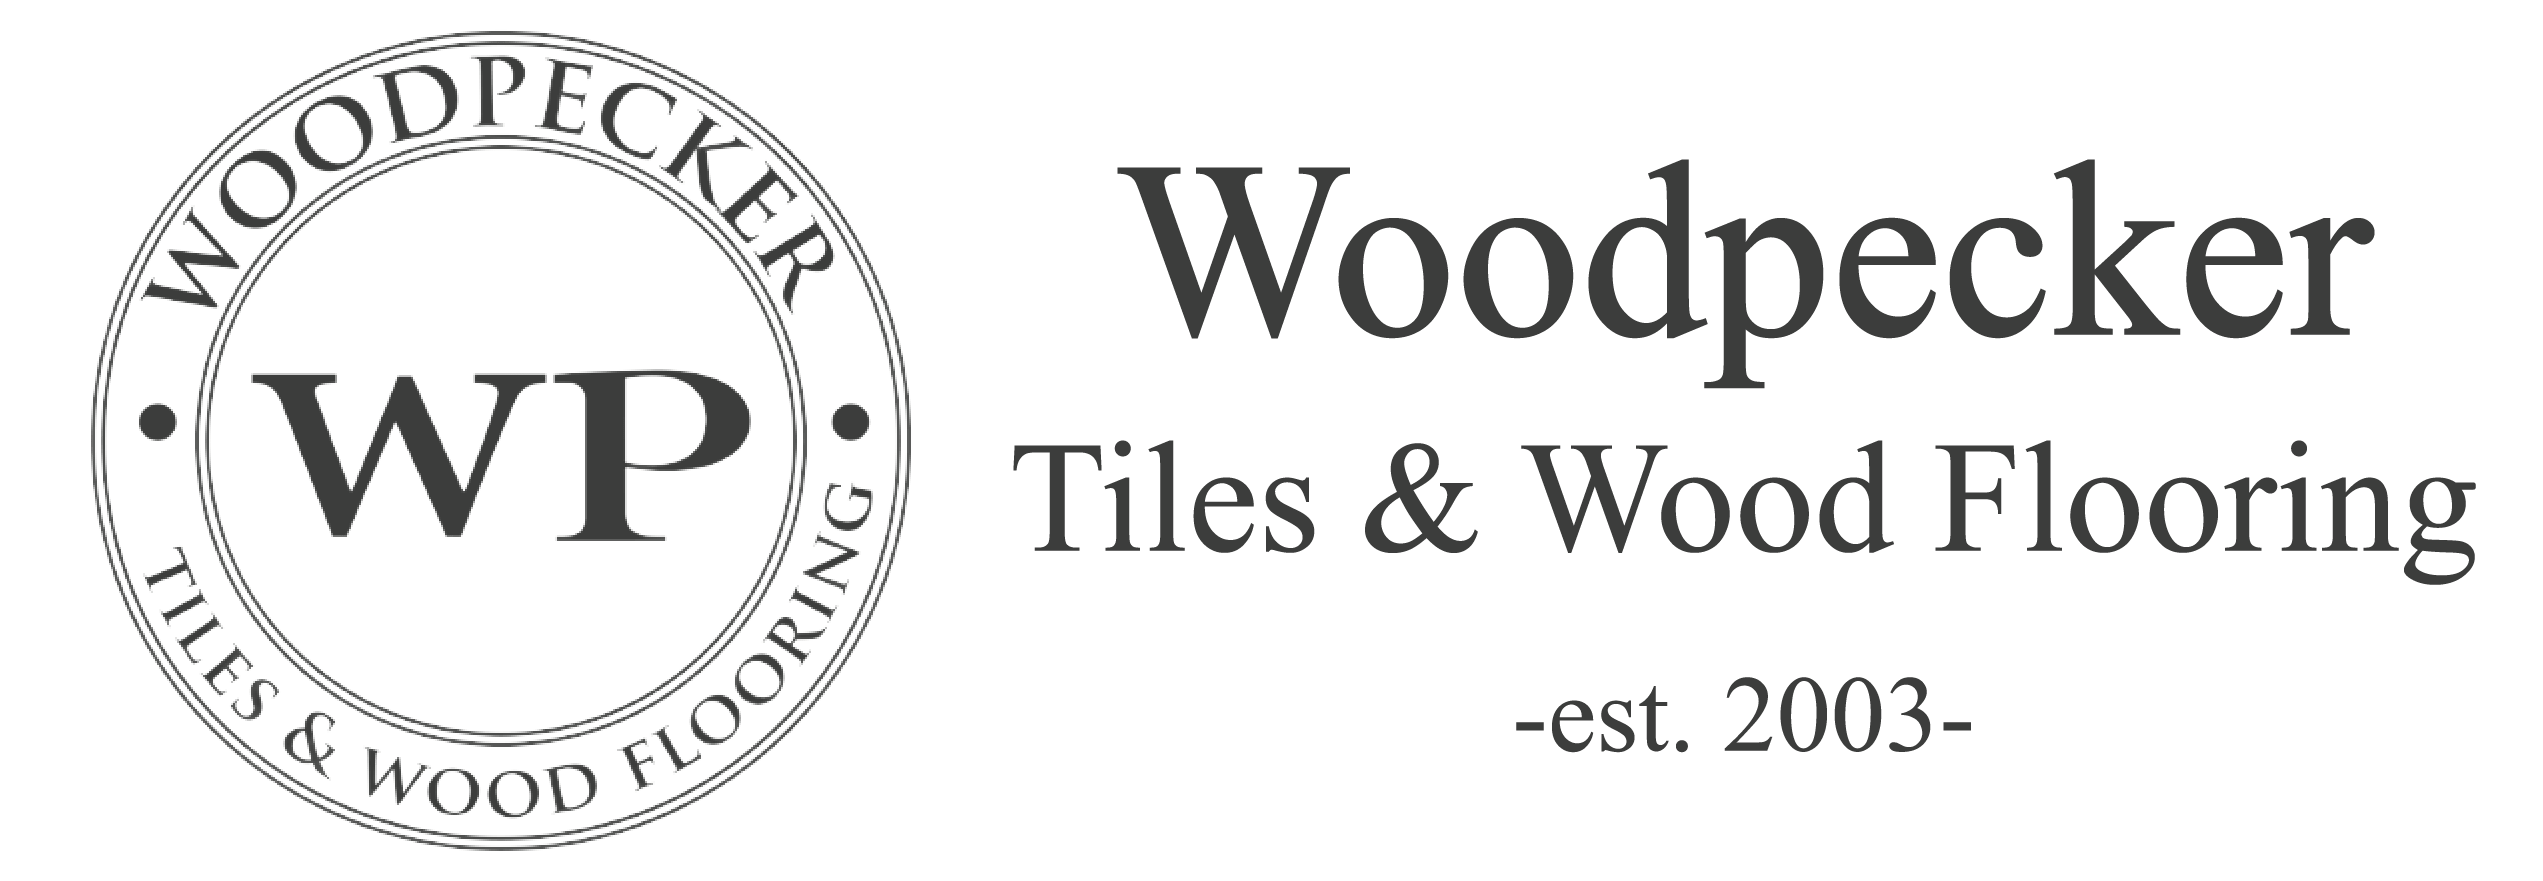 Woodpecker Tiles & Wood Flooring